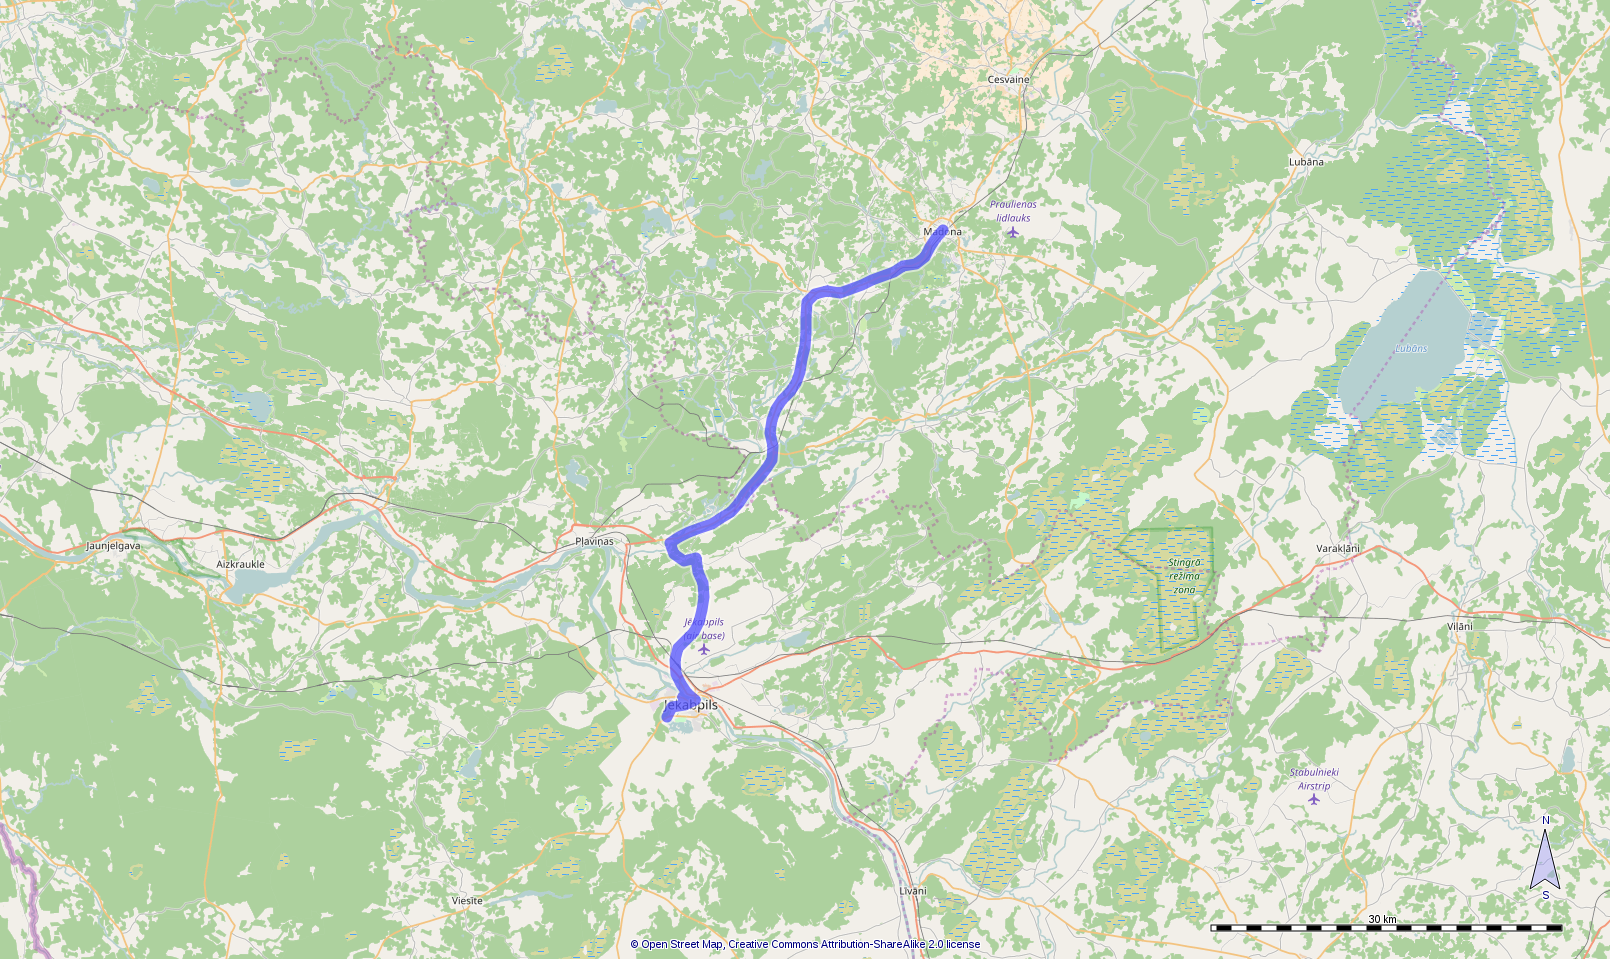 Route day 13